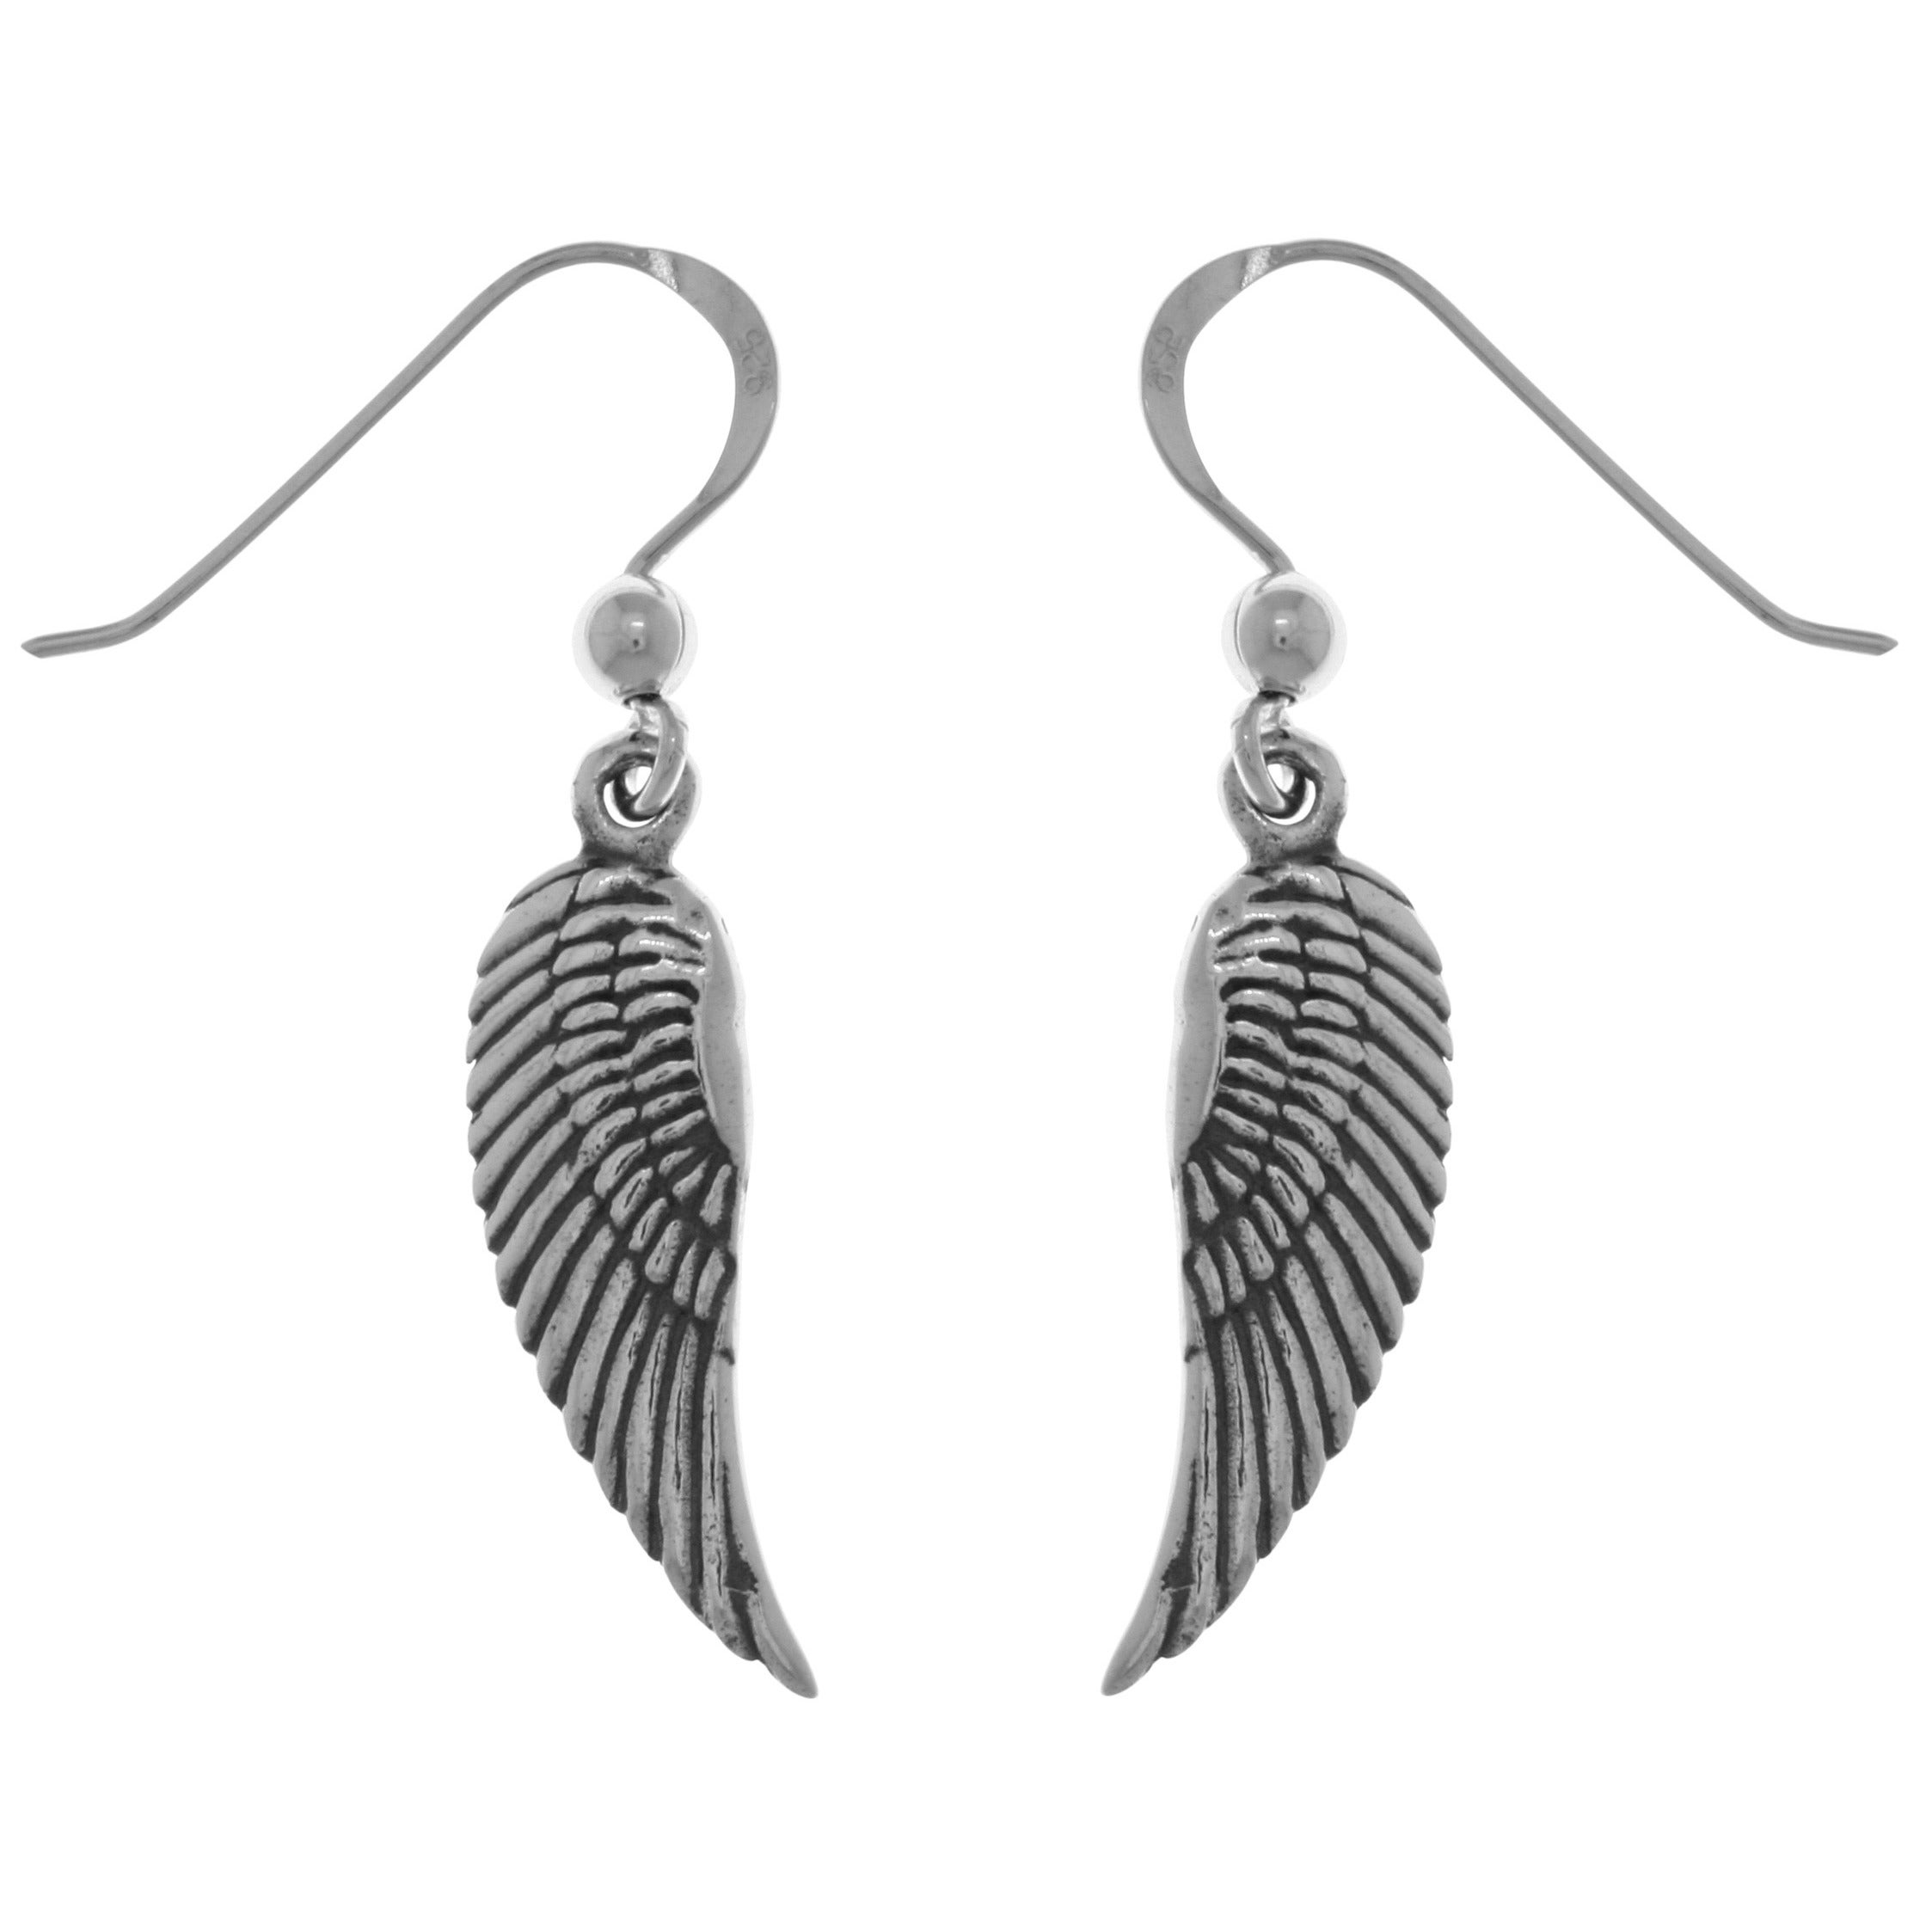 Angels Glamourous pearl earrings pictures recommend to wear for summer in 2019